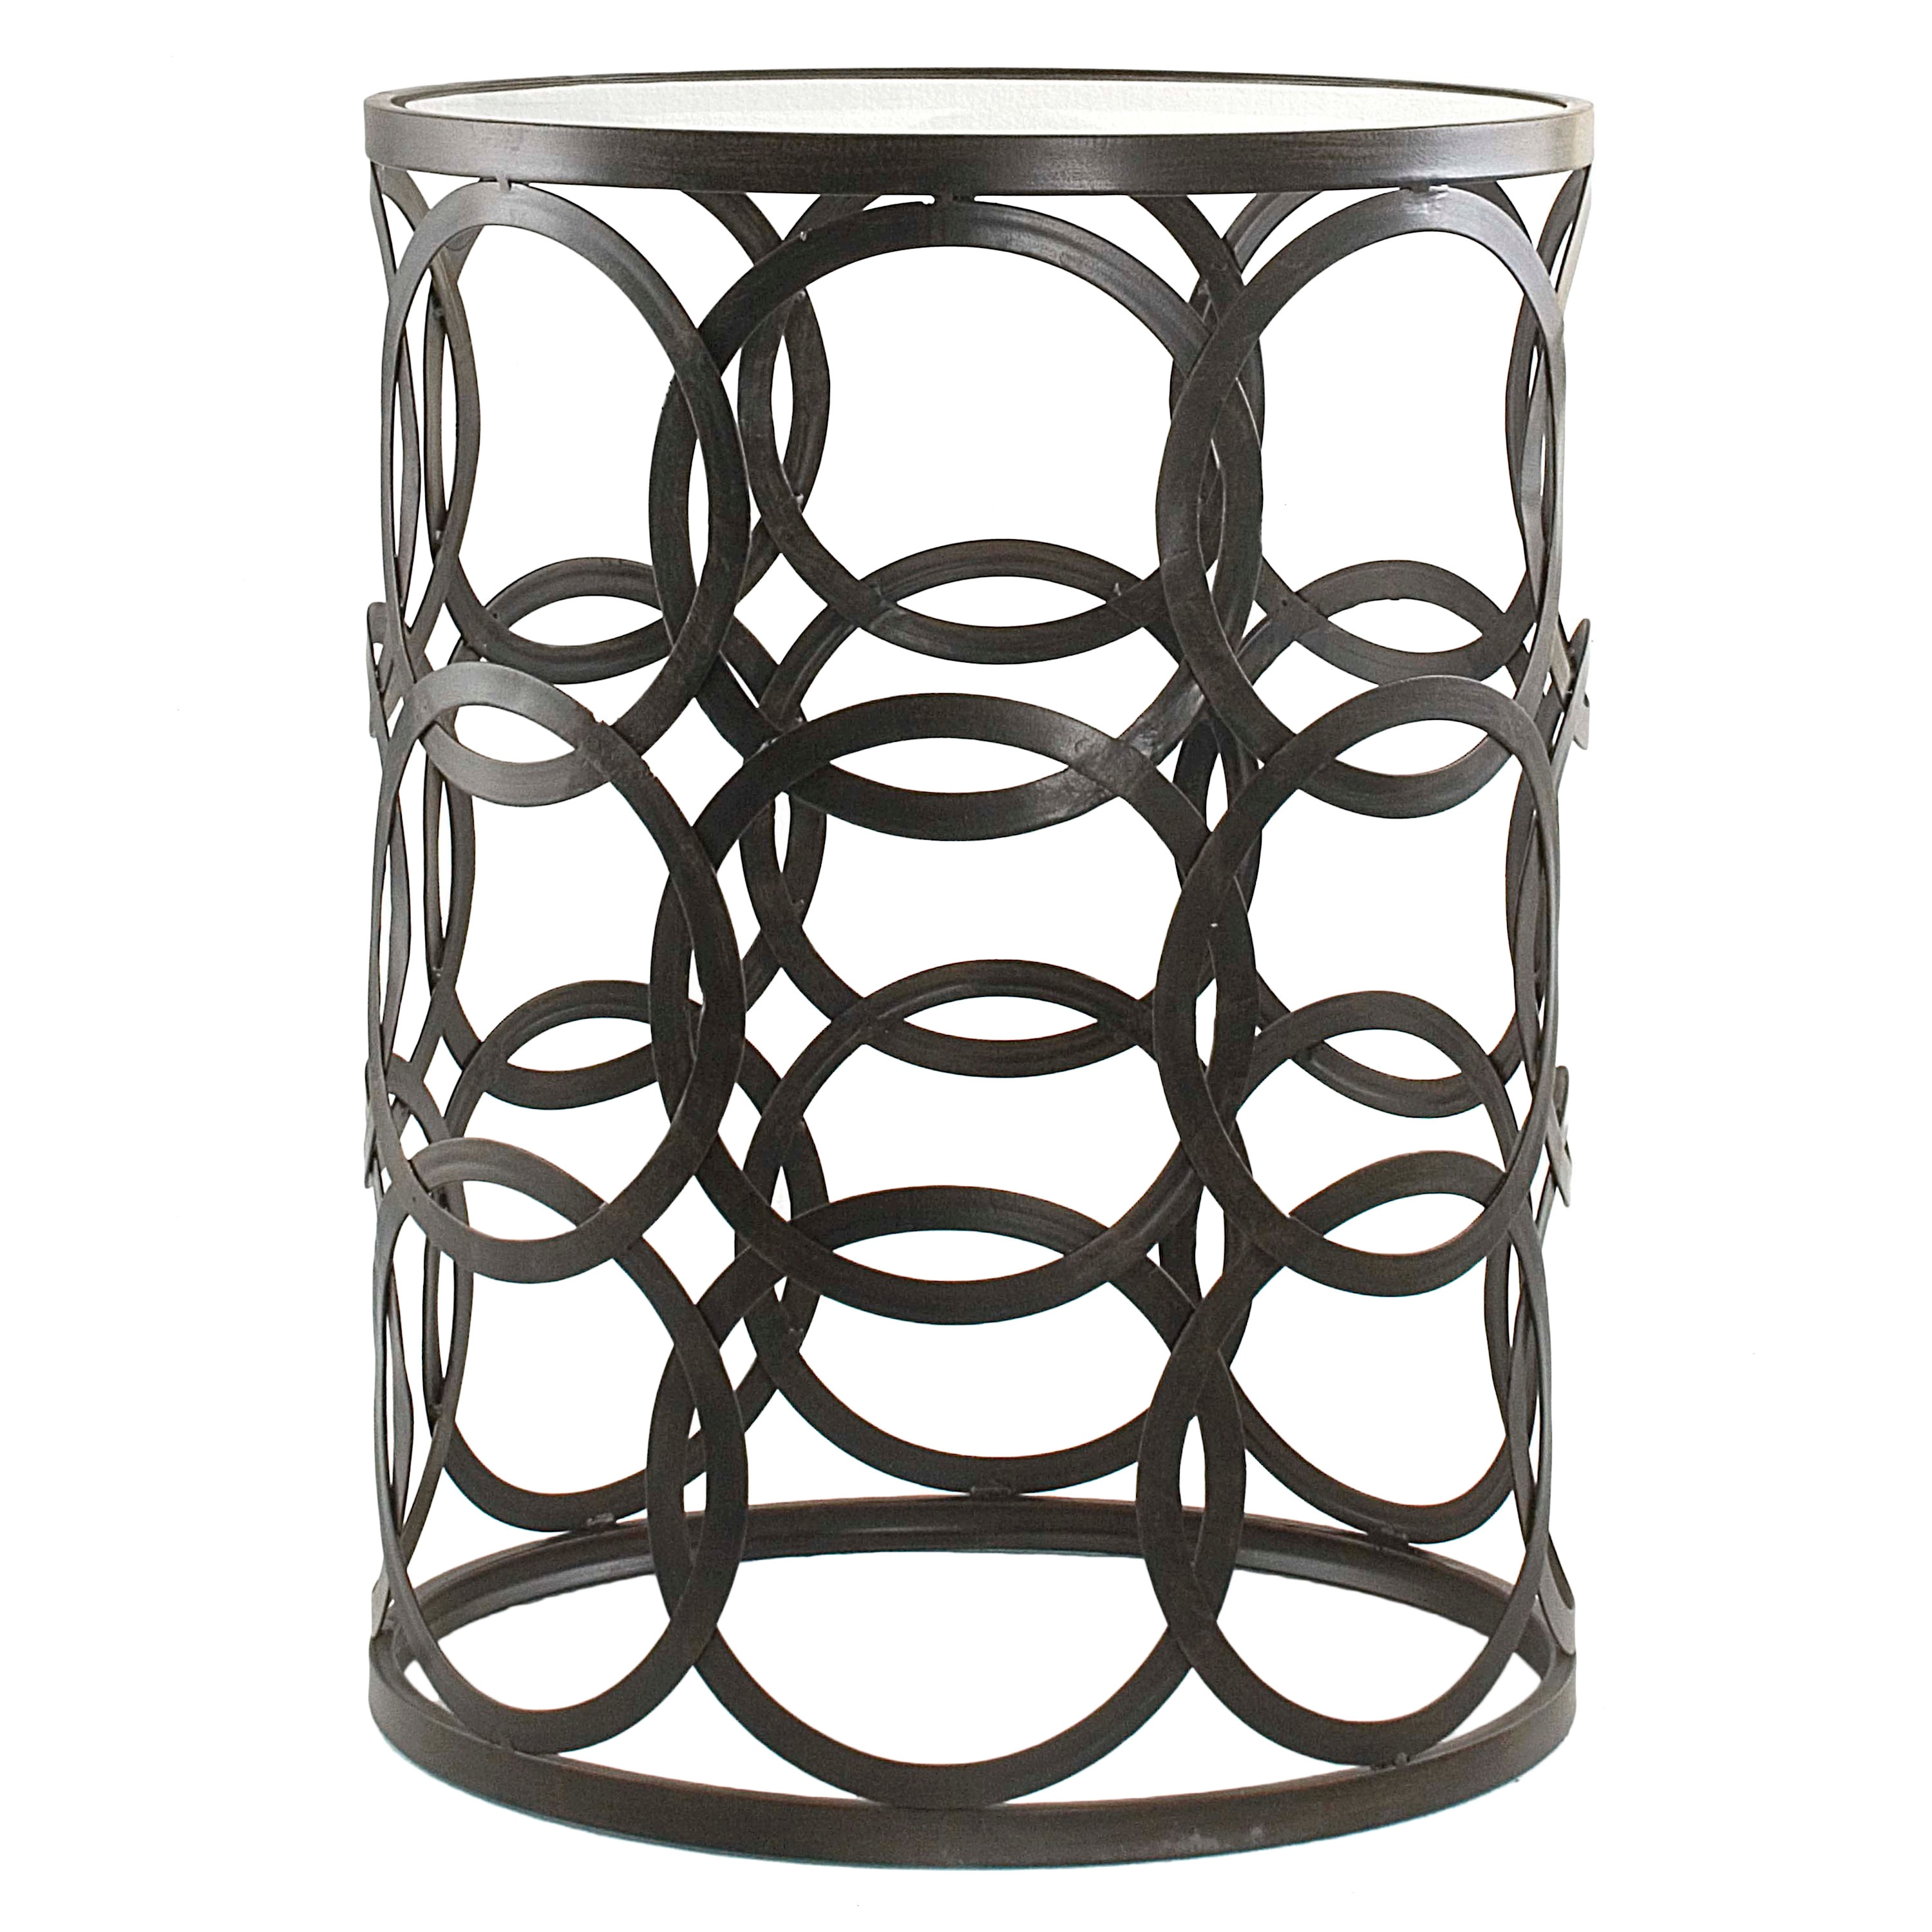 InnerSpace U0027Circlesu0027 Oil Rubbed Bronze Metal Barrel End Table   Free  Shipping Today   Overstock   15289397